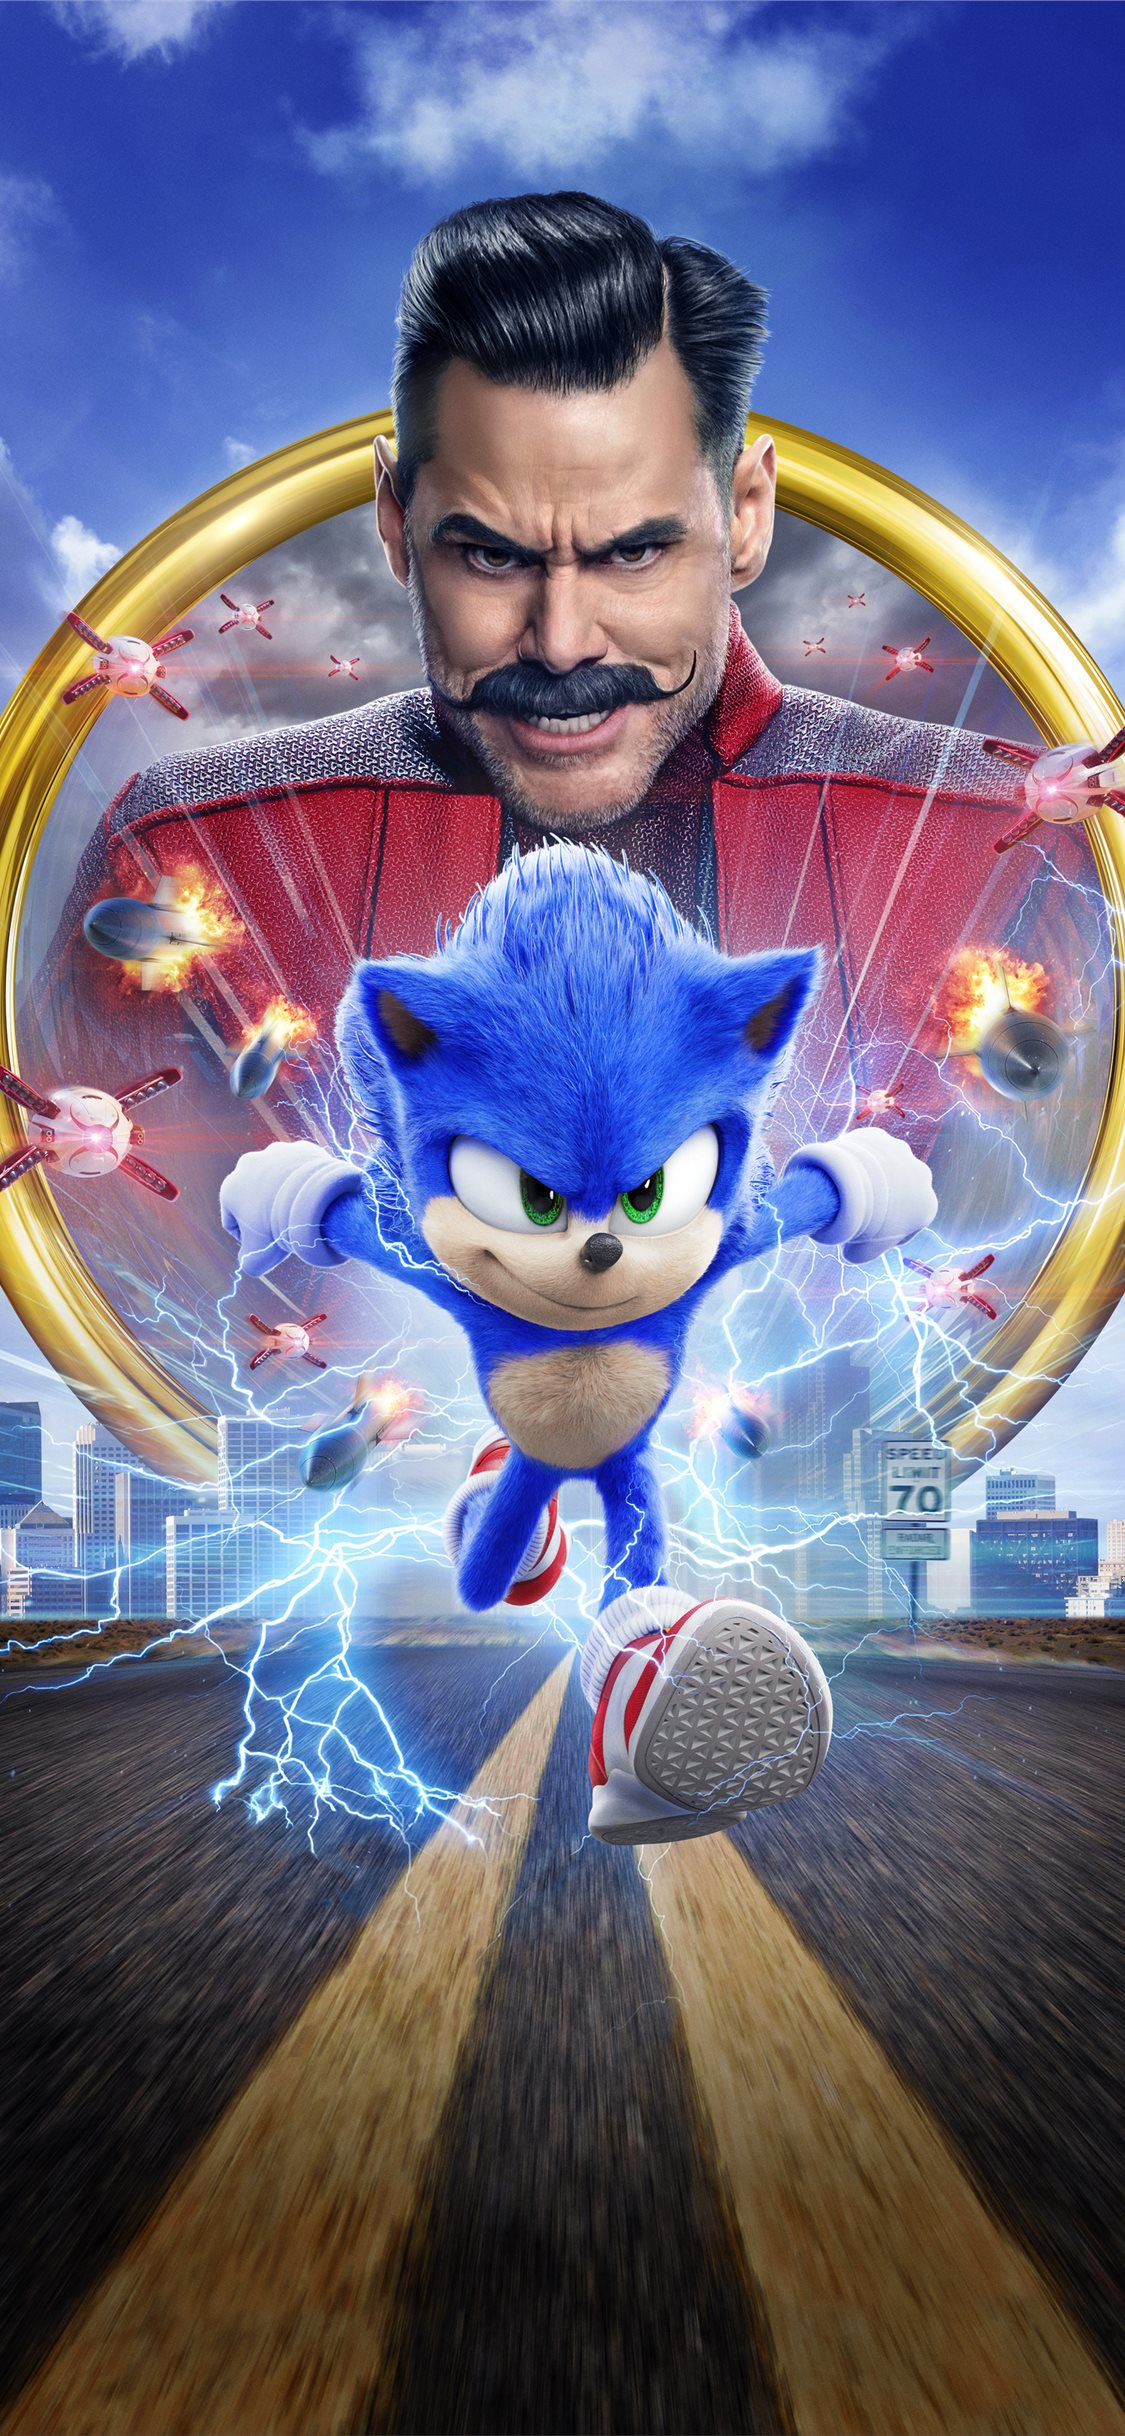 Sonic The Hedgehog Movie 8k Iphone X Wallpapers Free Download